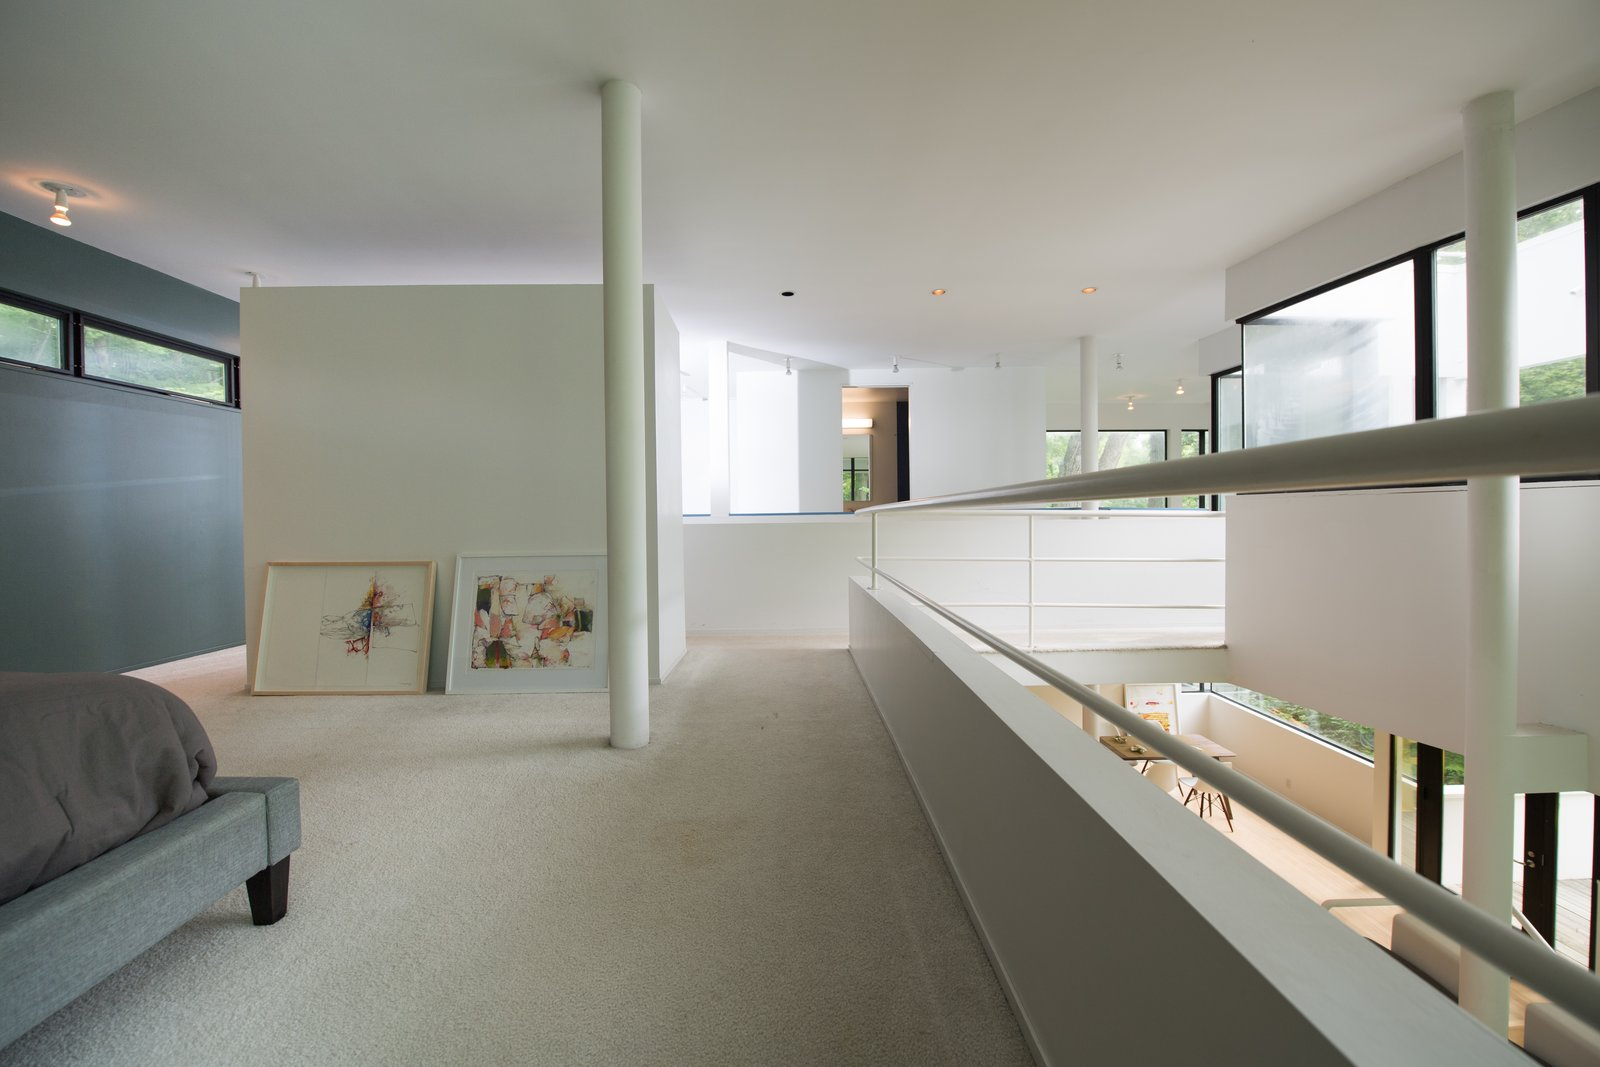 Bedroom, Recessed Lighting, and Carpet Floor  Photo 8 of 12 in At $265K, Michael Graves's First Commission Is a Bargain